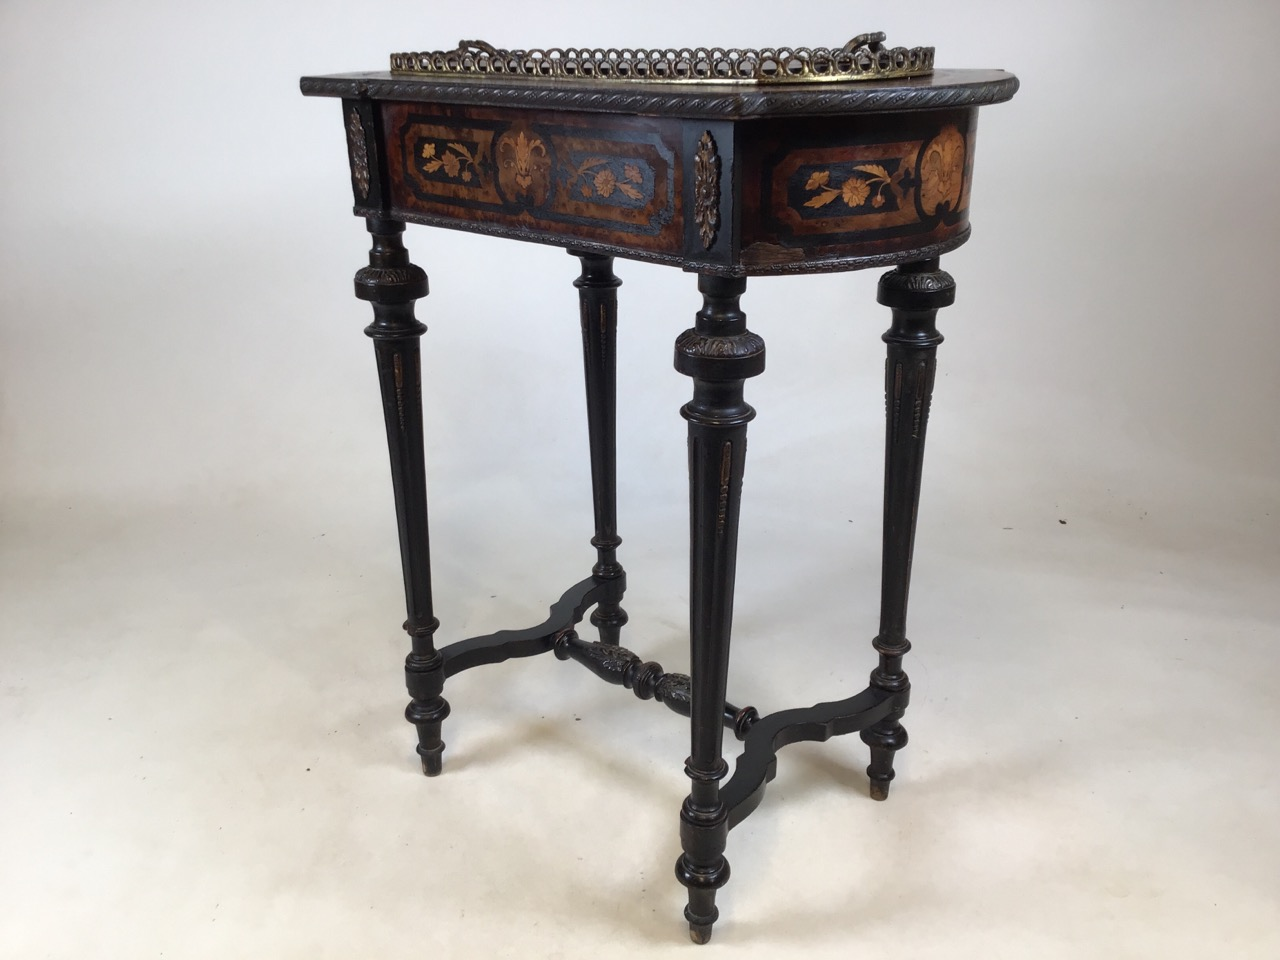 A 19th Century Dutch marquetry inlaid mahogany side table with tin lined lidded top possibly - Image 6 of 8